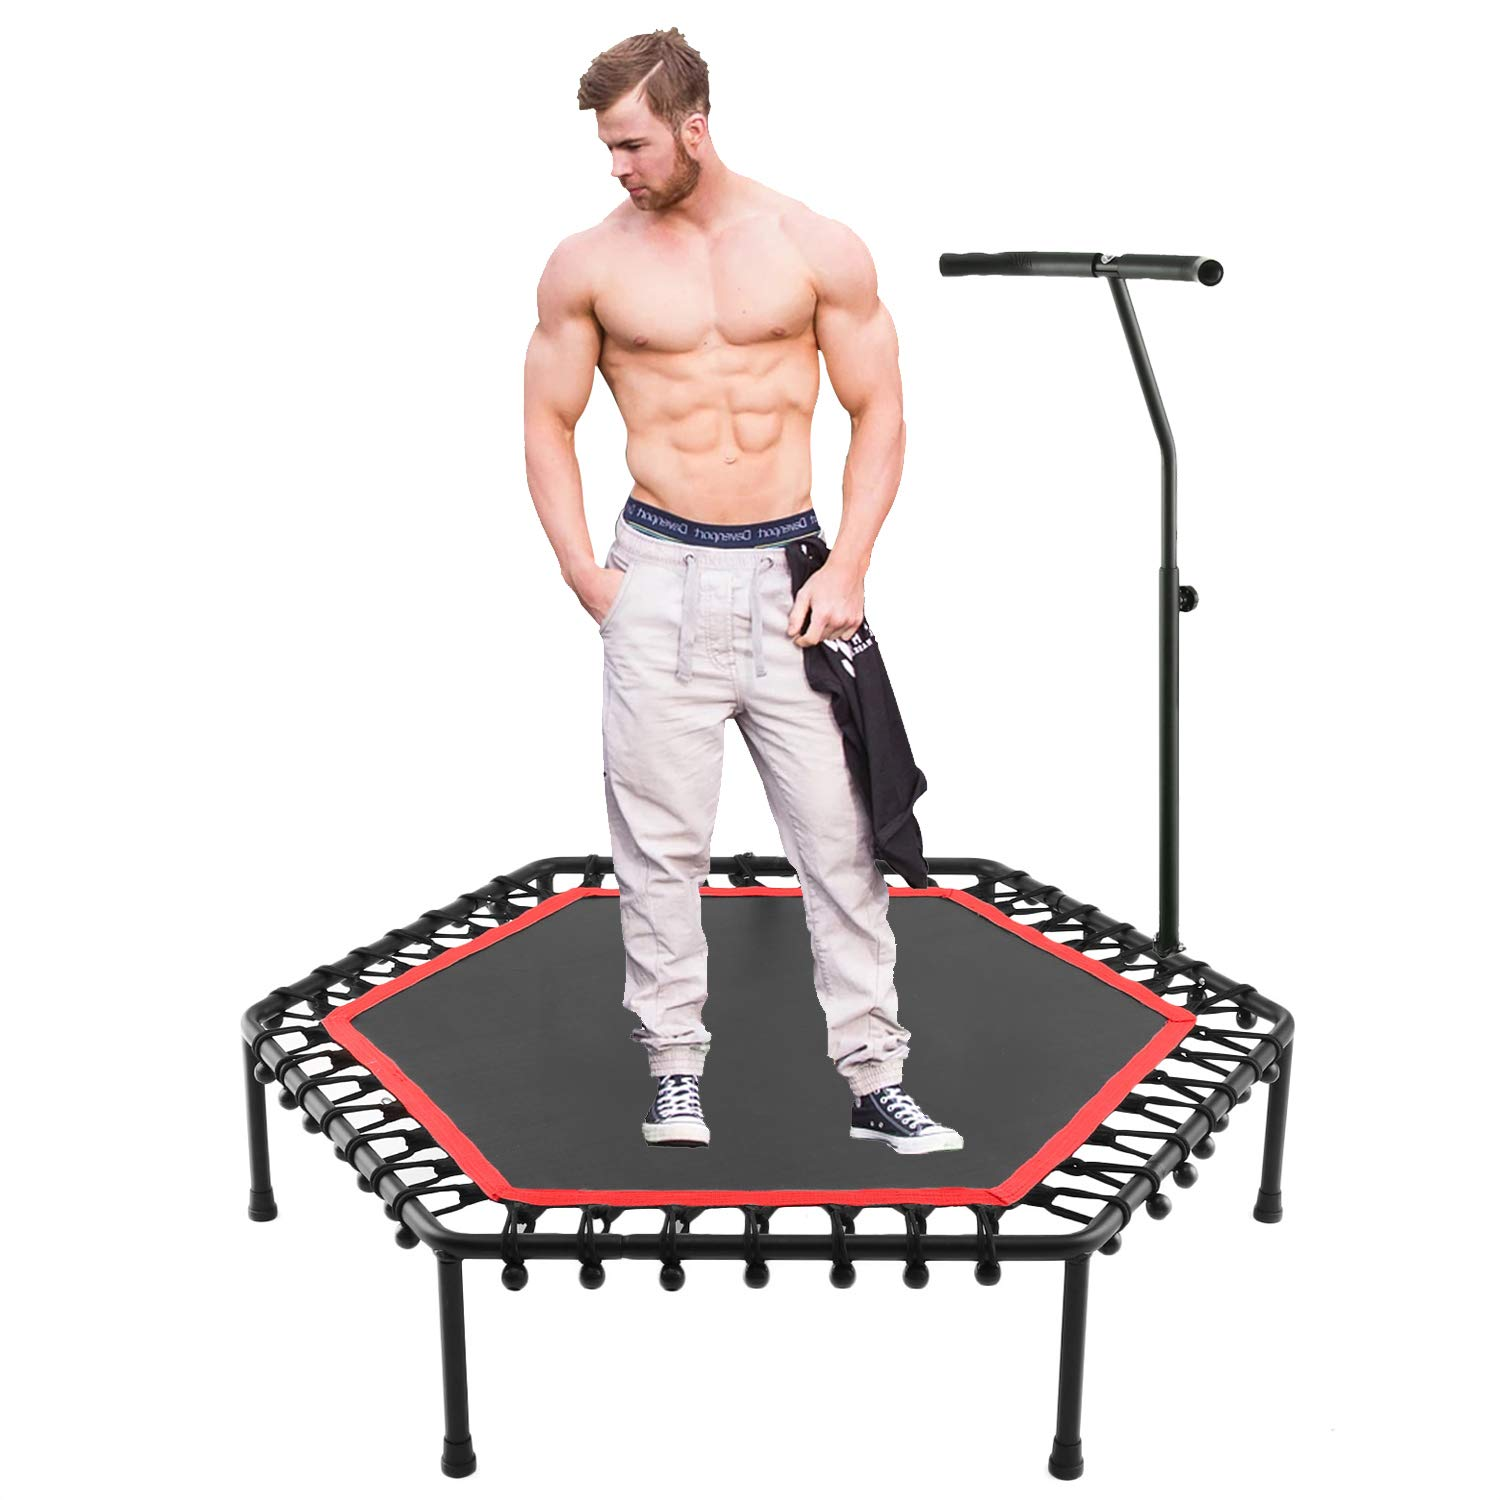 shaofu Small Trampoline Rebounders Fun Trampolines Indoor Max Load 220lbs Rebounder (US Stock) (Red, 38inch - foldable twice)